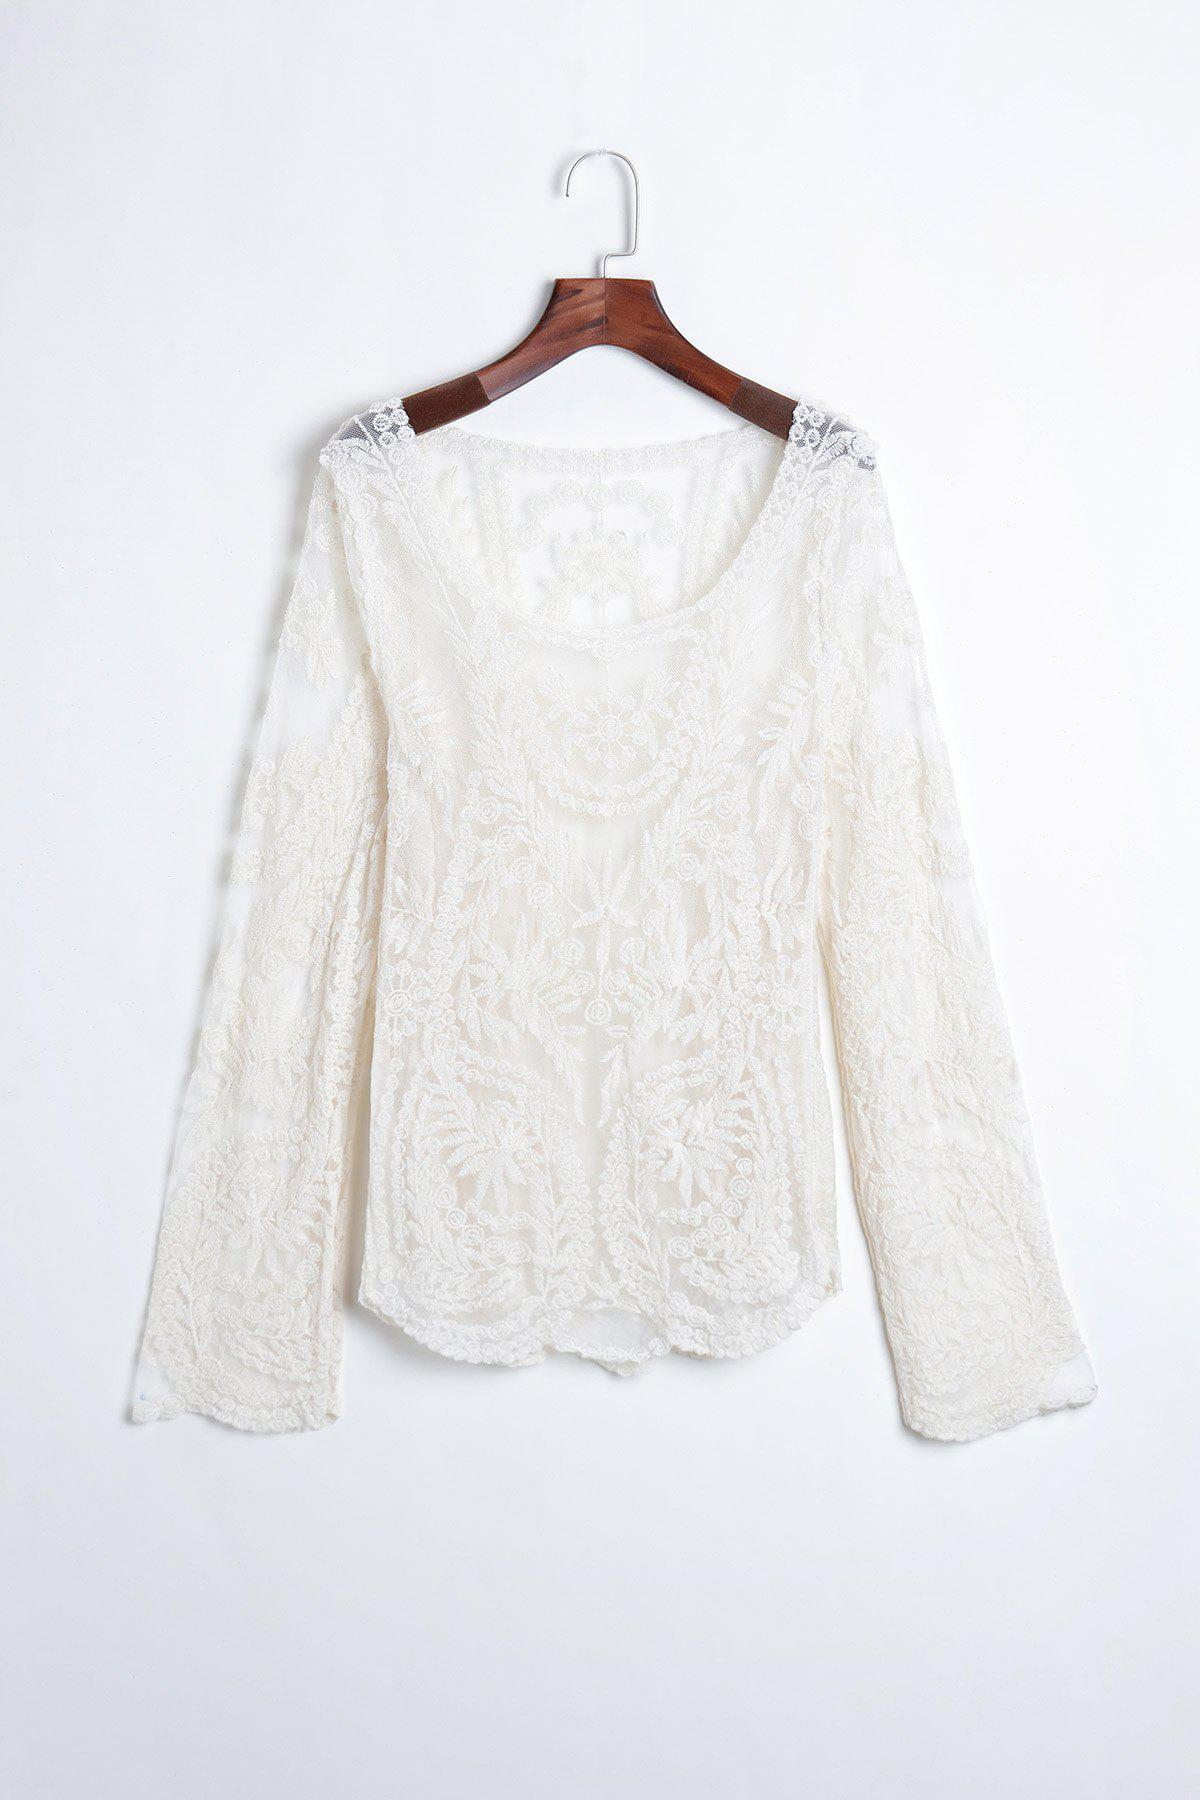 Sweet Women's Lace Blouse With Openwork Embroidery Pattern Loose Fit Design - OFF WHITE ONE SIZE